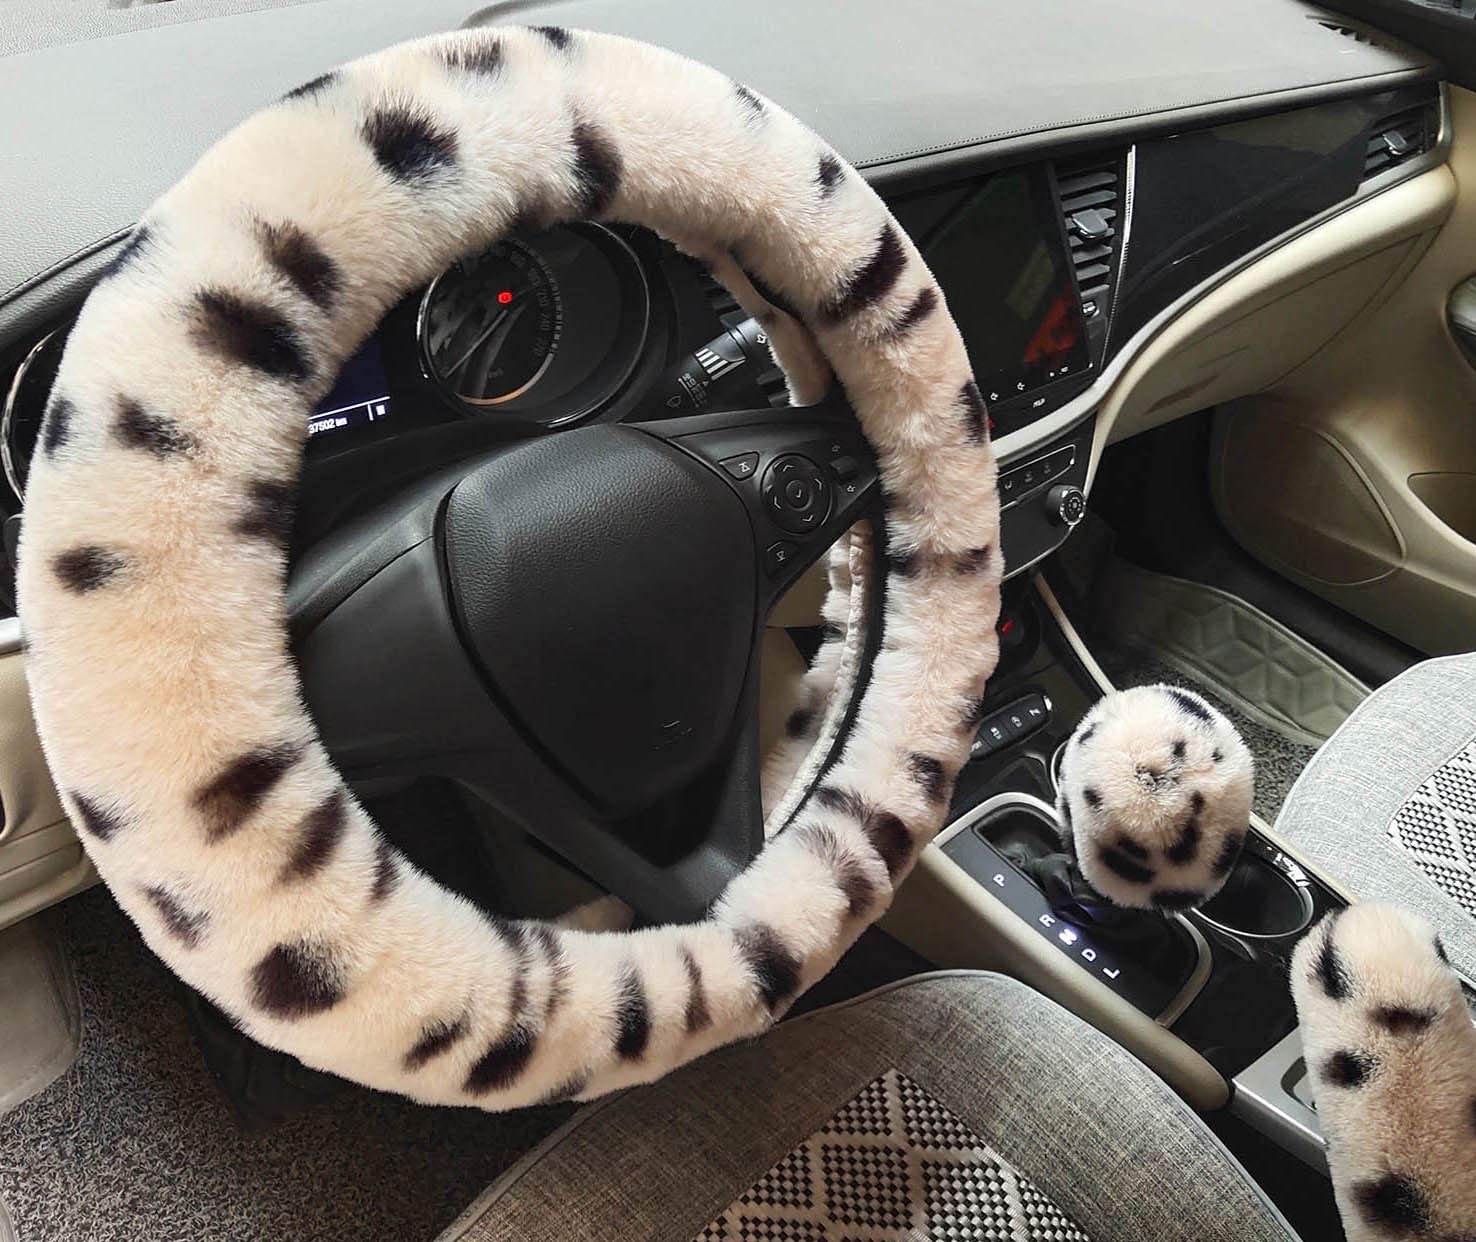 Winter Warm Fluffy Furry Fuzzy Car Steering Wheel Cover,Universal Fit Thickening Faux Fur Plush Steering Covers+Gear Shift Cover and+Brake cover-3pcs Set Beige/&Leopard